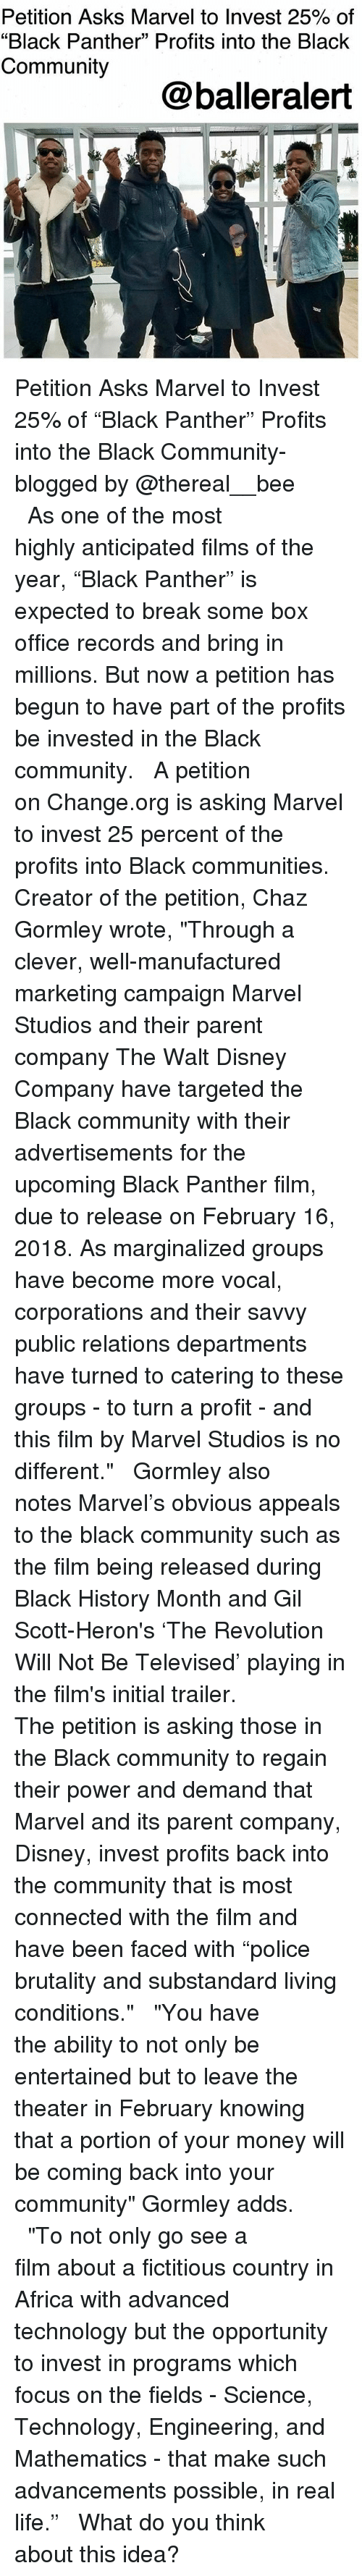 """Africa, Black History Month, and Community: Petition Asks Marvel to Invest 25% of  """"Black Panther"""" Profits into the Black  Community  @balleralert Petition Asks Marvel to Invest 25% of """"Black Panther"""" Profits into the Black Community-blogged by @thereal__bee ⠀⠀⠀⠀⠀⠀⠀⠀⠀ ⠀⠀ As one of the most highly anticipated films of the year, """"Black Panther"""" is expected to break some box office records and bring in millions. But now a petition has begun to have part of the profits be invested in the Black community. ⠀⠀⠀⠀⠀⠀⠀⠀⠀ ⠀⠀ A petition on Change.org is asking Marvel to invest 25 percent of the profits into Black communities. Creator of the petition, Chaz Gormley wrote, """"Through a clever, well-manufactured marketing campaign Marvel Studios and their parent company The Walt Disney Company have targeted the Black community with their advertisements for the upcoming Black Panther film, due to release on February 16, 2018. As marginalized groups have become more vocal, corporations and their savvy public relations departments have turned to catering to these groups - to turn a profit - and this film by Marvel Studios is no different."""" ⠀⠀⠀⠀⠀⠀⠀⠀⠀ ⠀⠀ Gormley also notes Marvel's obvious appeals to the black community such as the film being released during Black History Month and Gil Scott-Heron's 'The Revolution Will Not Be Televised' playing in the film's initial trailer. ⠀⠀⠀⠀⠀⠀⠀⠀⠀ ⠀⠀ The petition is asking those in the Black community to regain their power and demand that Marvel and its parent company, Disney, invest profits back into the community that is most connected with the film and have been faced with """"police brutality and substandard living conditions."""" ⠀⠀⠀⠀⠀⠀⠀⠀⠀ ⠀⠀ """"You have the ability to not only be entertained but to leave the theater in February knowing that a portion of your money will be coming back into your community"""" Gormley adds. ⠀⠀⠀⠀⠀⠀⠀⠀⠀ ⠀⠀ """"To not only go see a film about a fictitious country in Africa with advanced technology but the opportunity to invest in pr"""